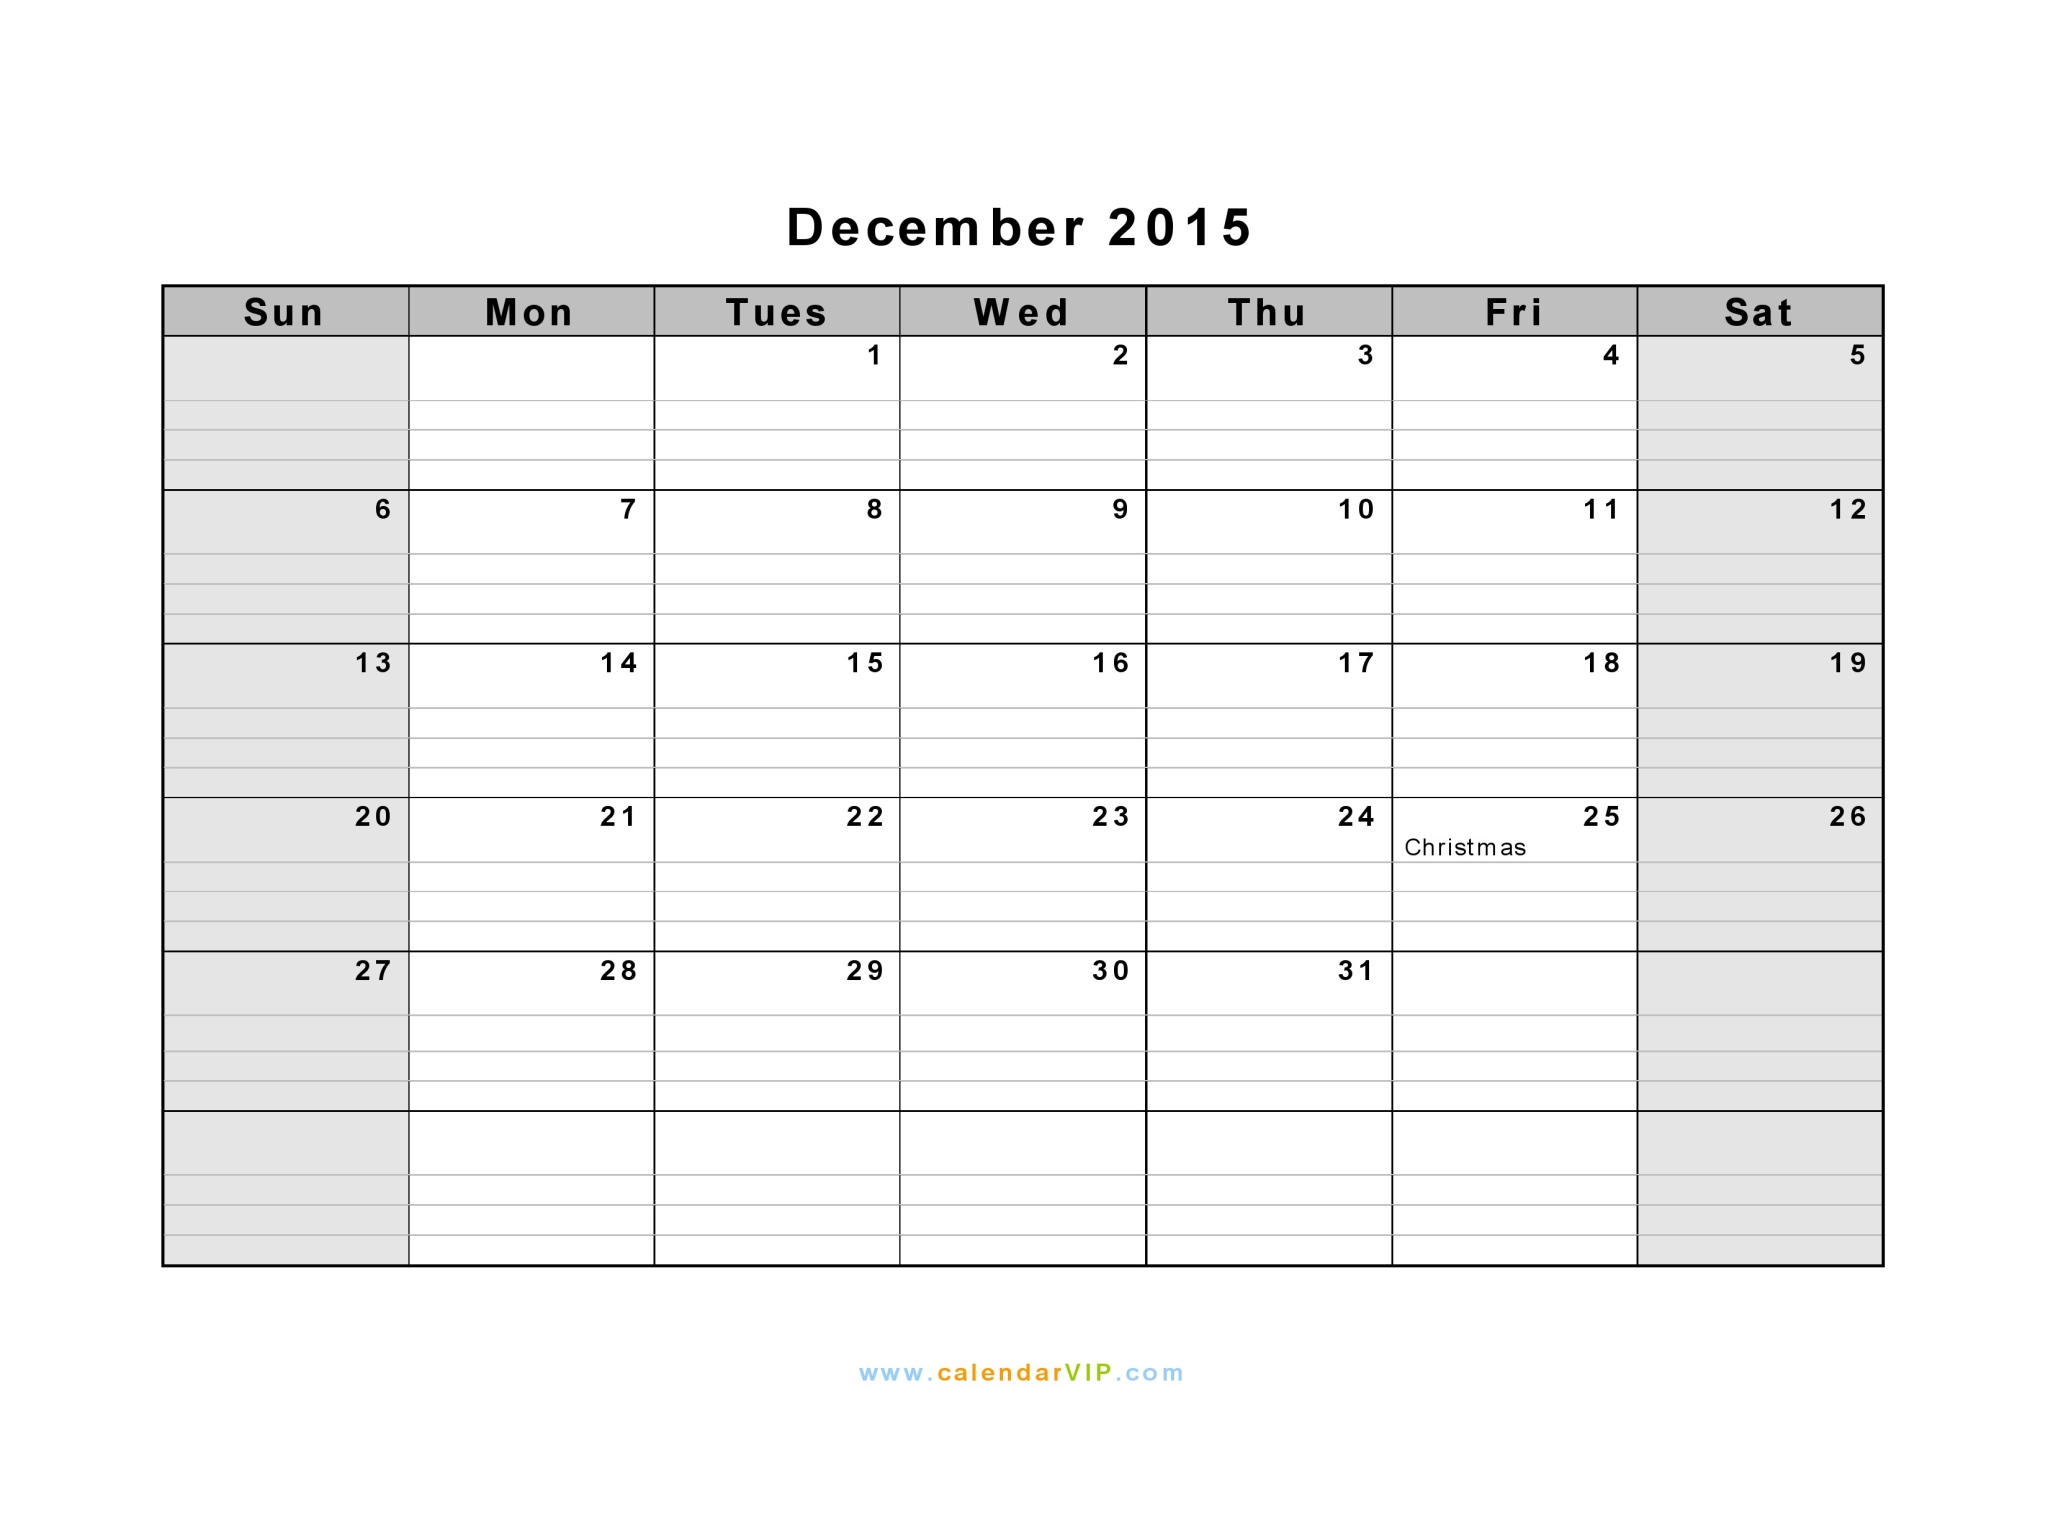 Delighted 1 Year Experience Resume Format Free Download Tall 1 Year Experienced Software Developer Resume Sample Rectangular 10 Envelope Template 10 Label Template Young 10 Steps To Writing A Resume Black100 Free Resume Templates December 2015 Calendar   Blank Printable Calendar Template In PDF ..